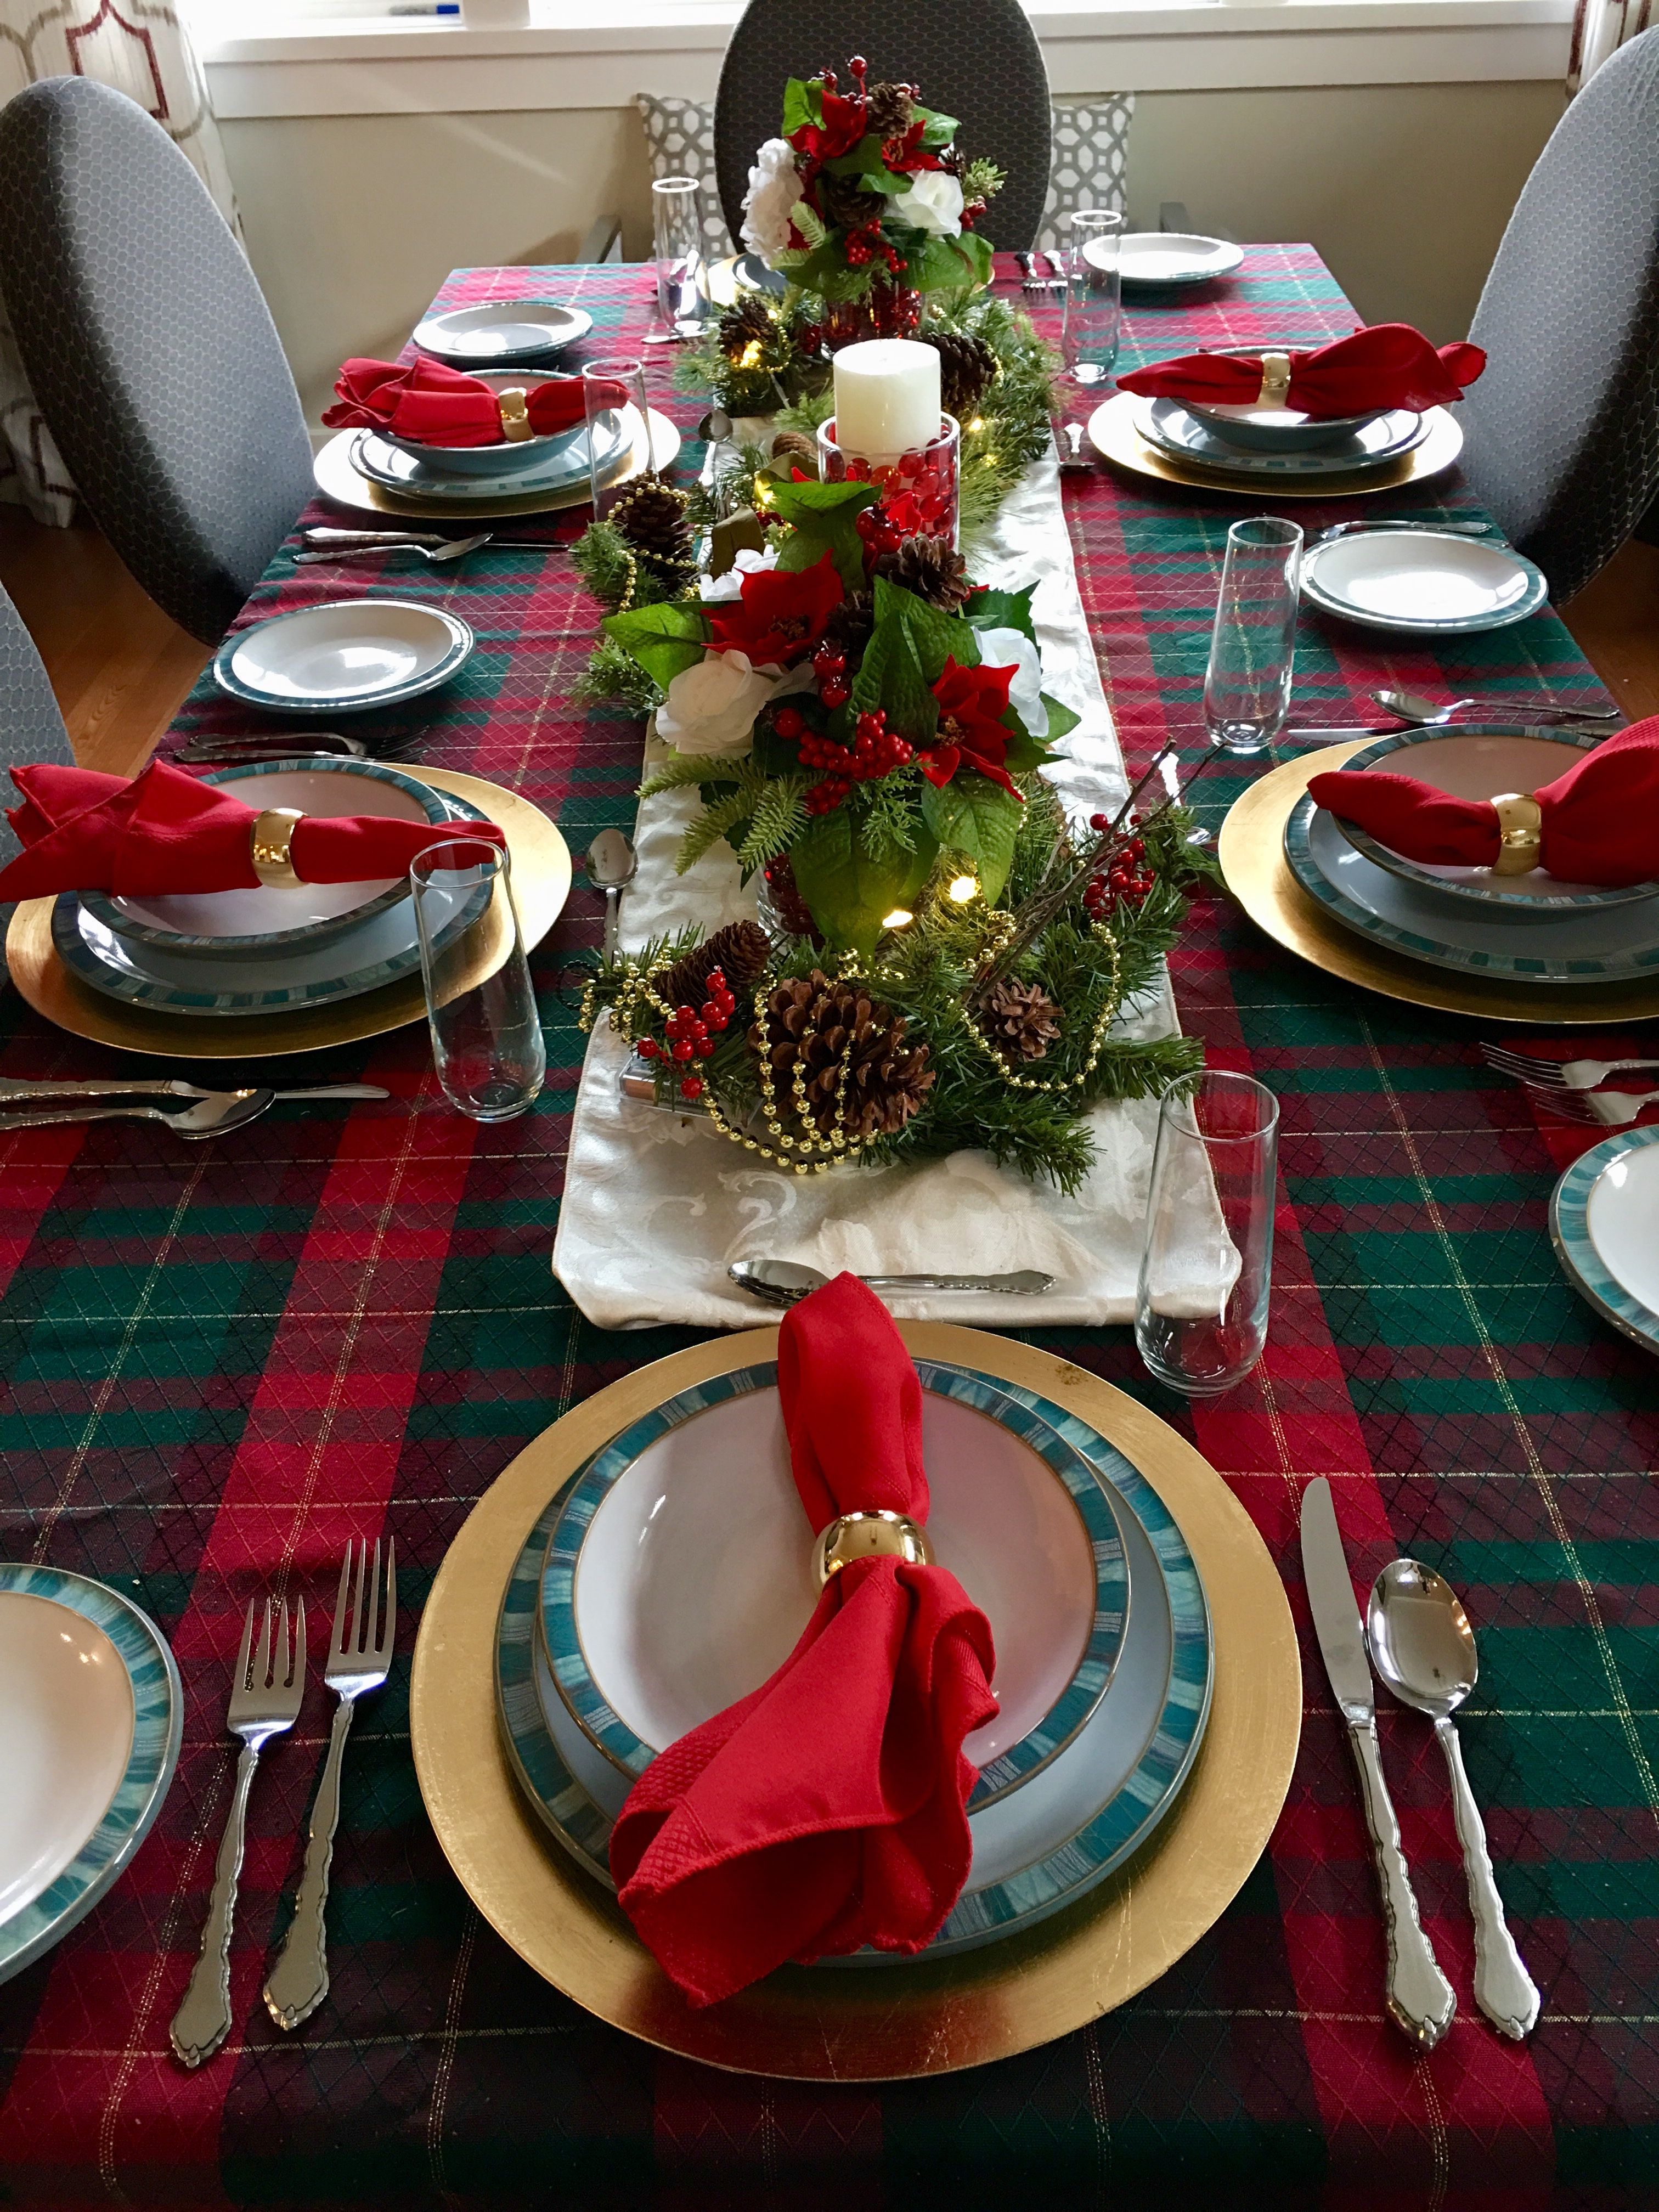 Christmas Table Setting Red Green Plaid With Gold Thread Everyday Dishes With Gold Tr Christmas Table Settings Table Settings Everyday Green Table Settings